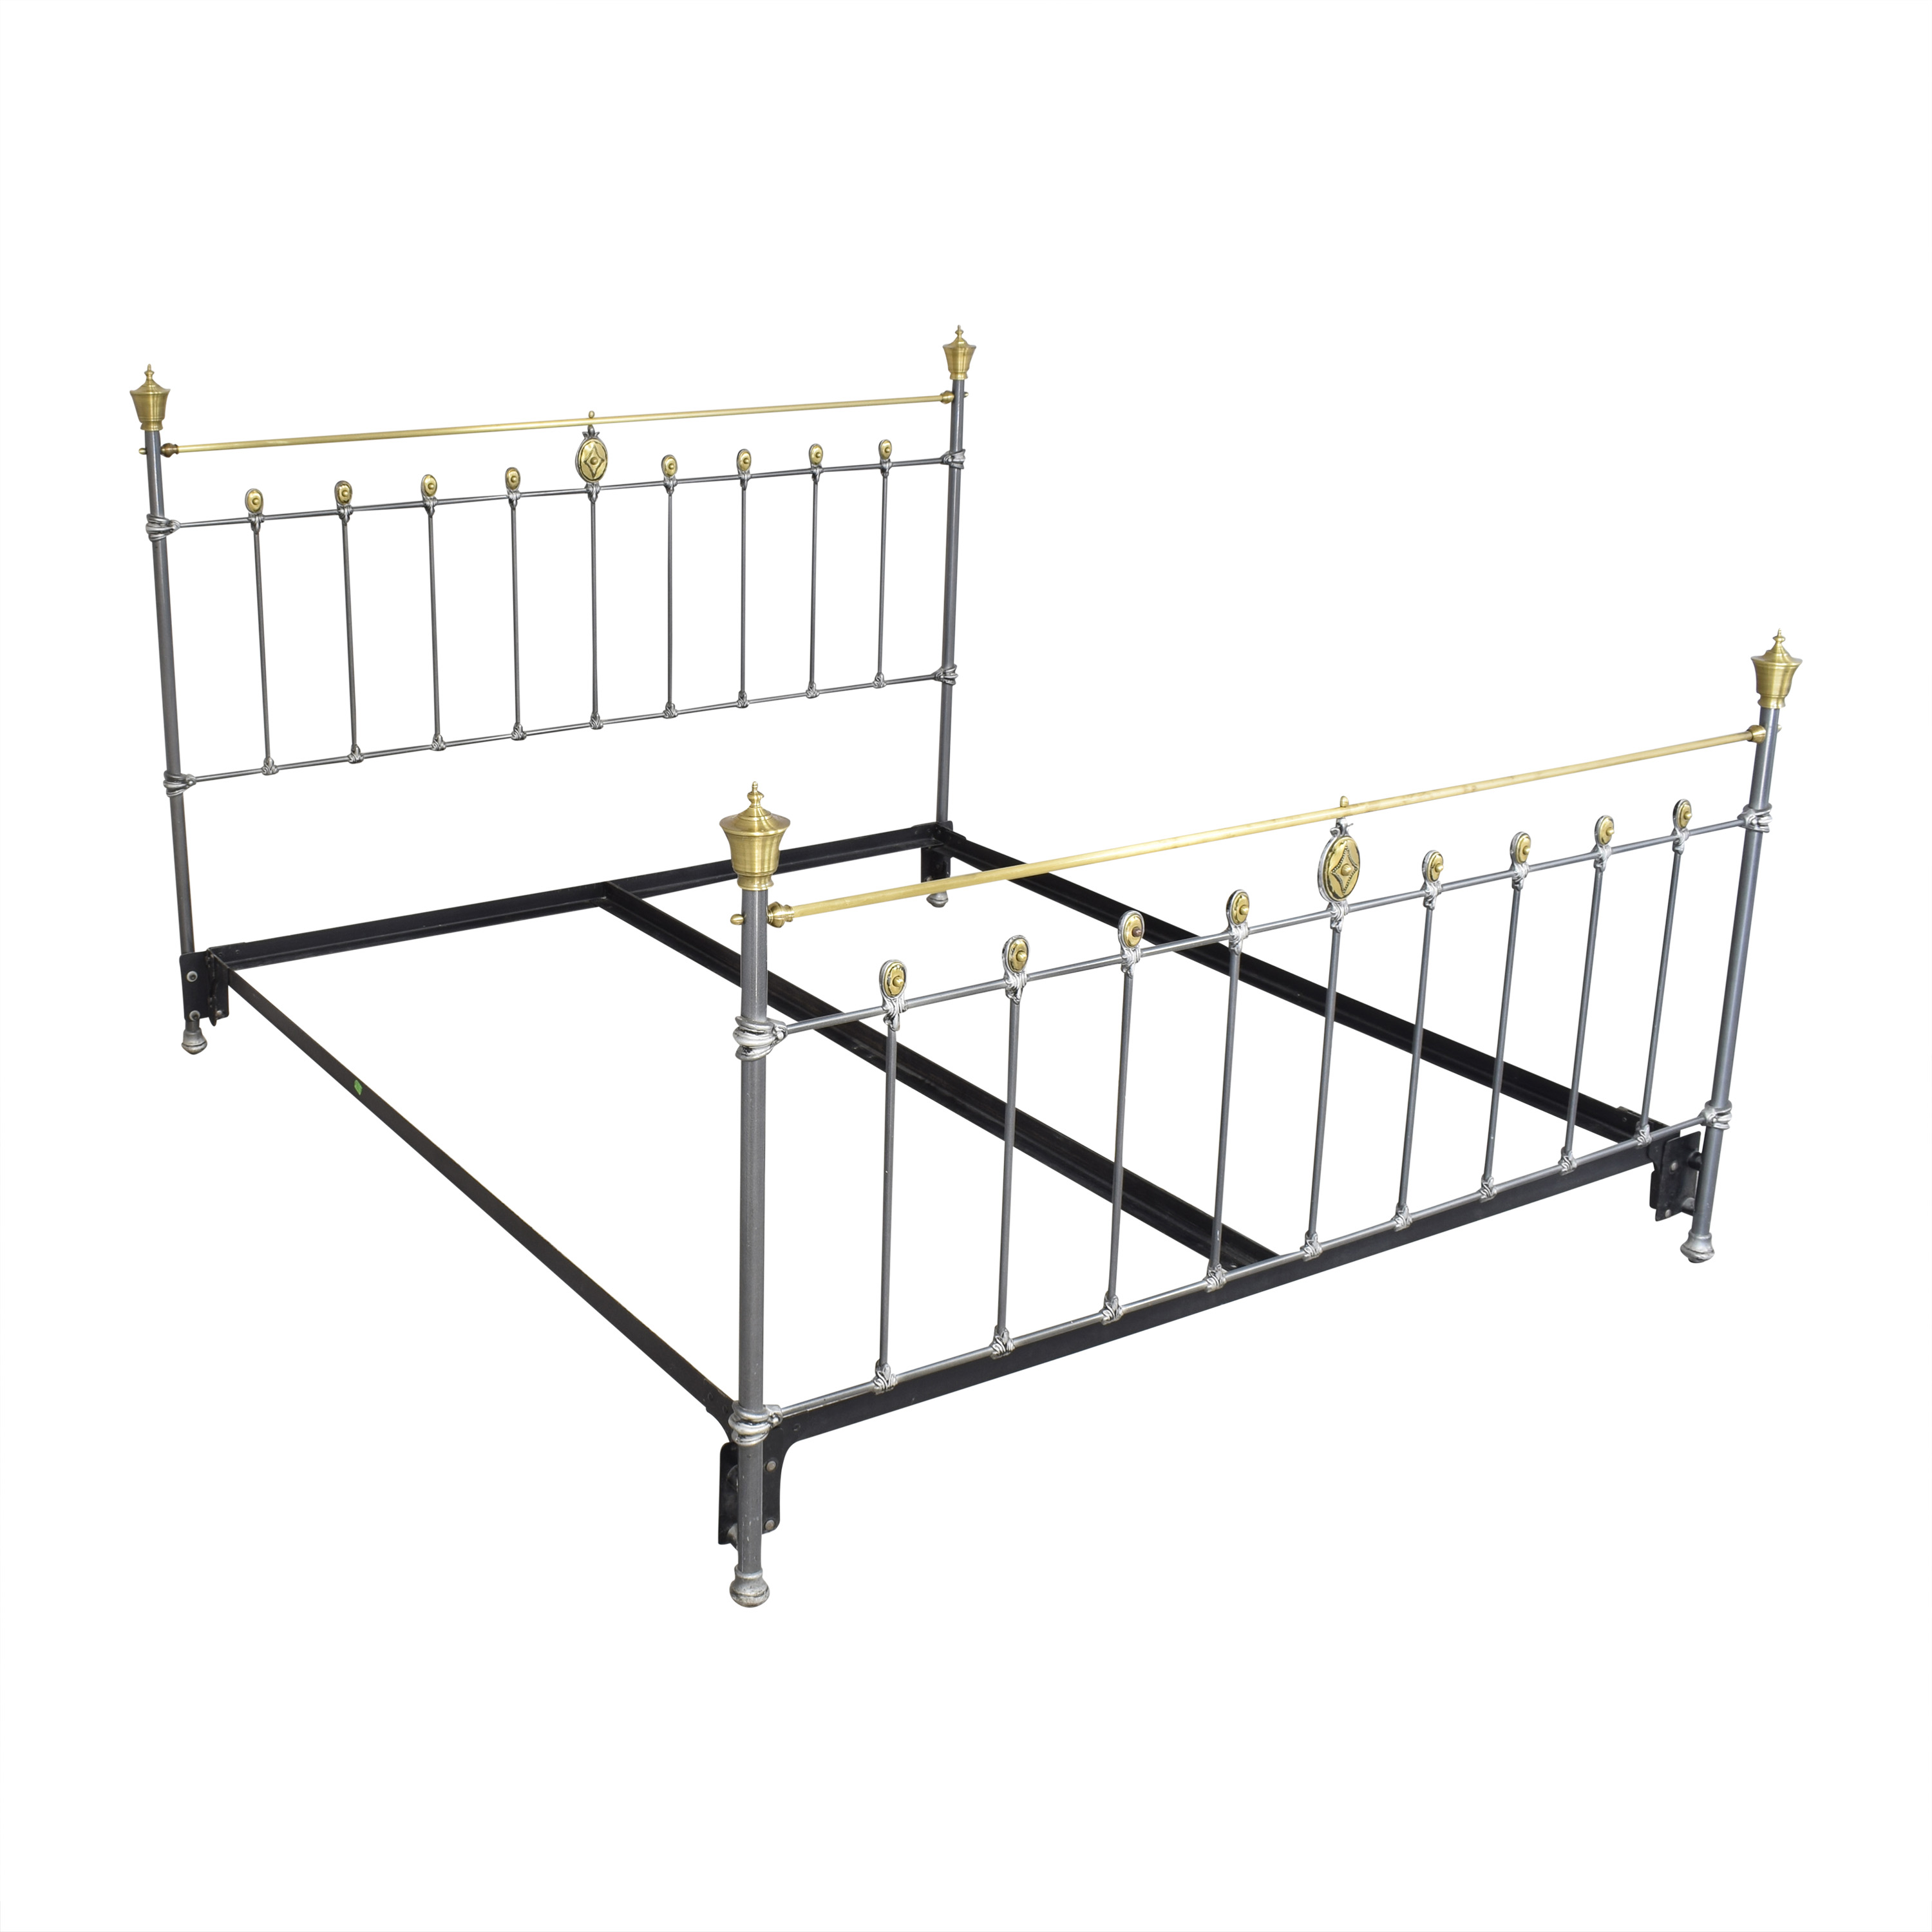 California King Poster Bed dimensions